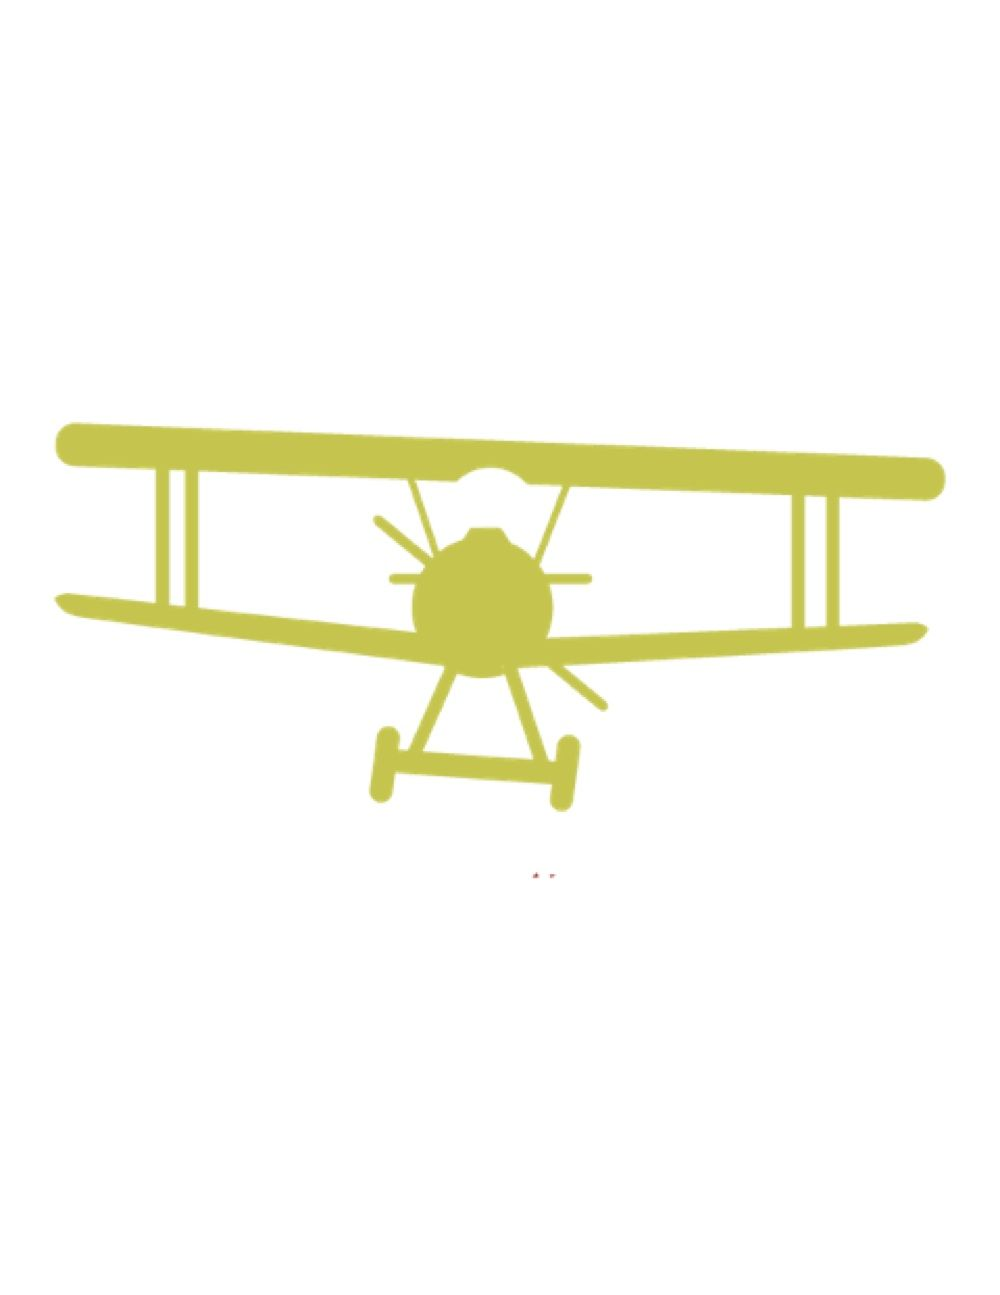 Free Wall Printables Free Air Themed Printables Vintage Airplanes Airplanes And Free